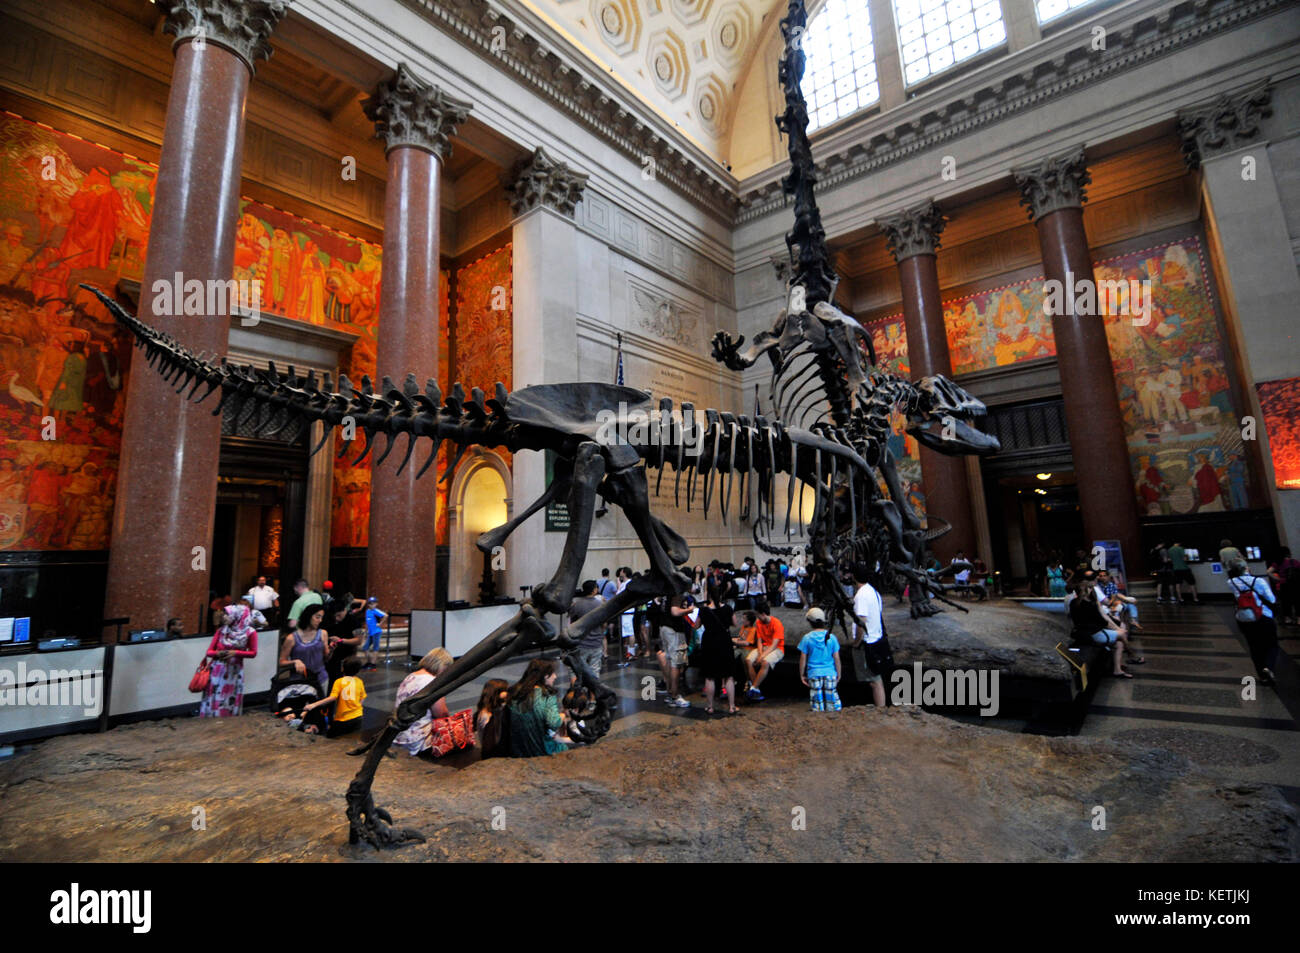 Dinosaur skeleton exhibits in the Main Hall of the American museum on natural history in Manhattan, New York. - Stock Image